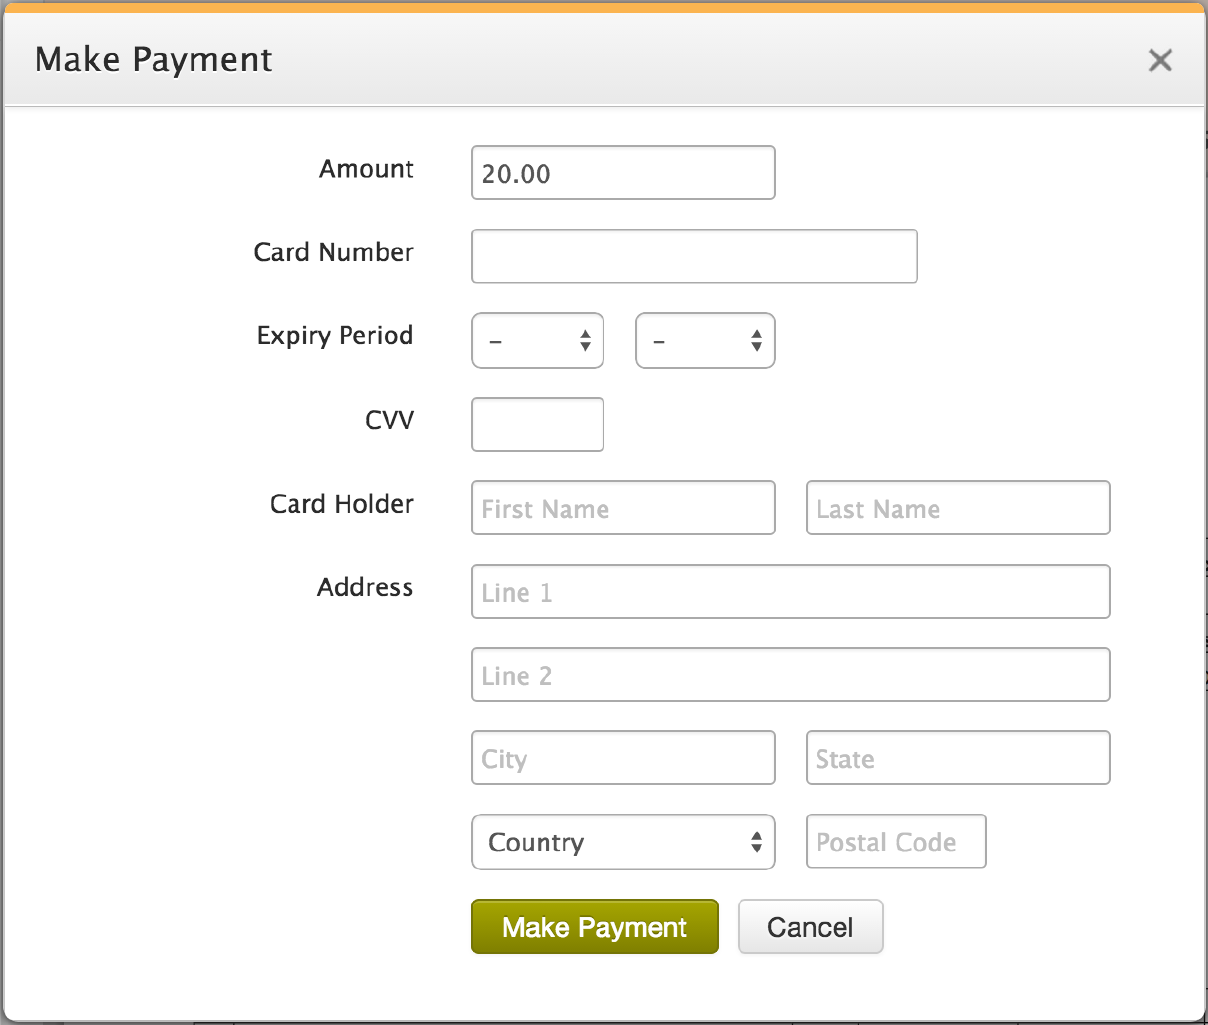 Make Payment From Patient Portal